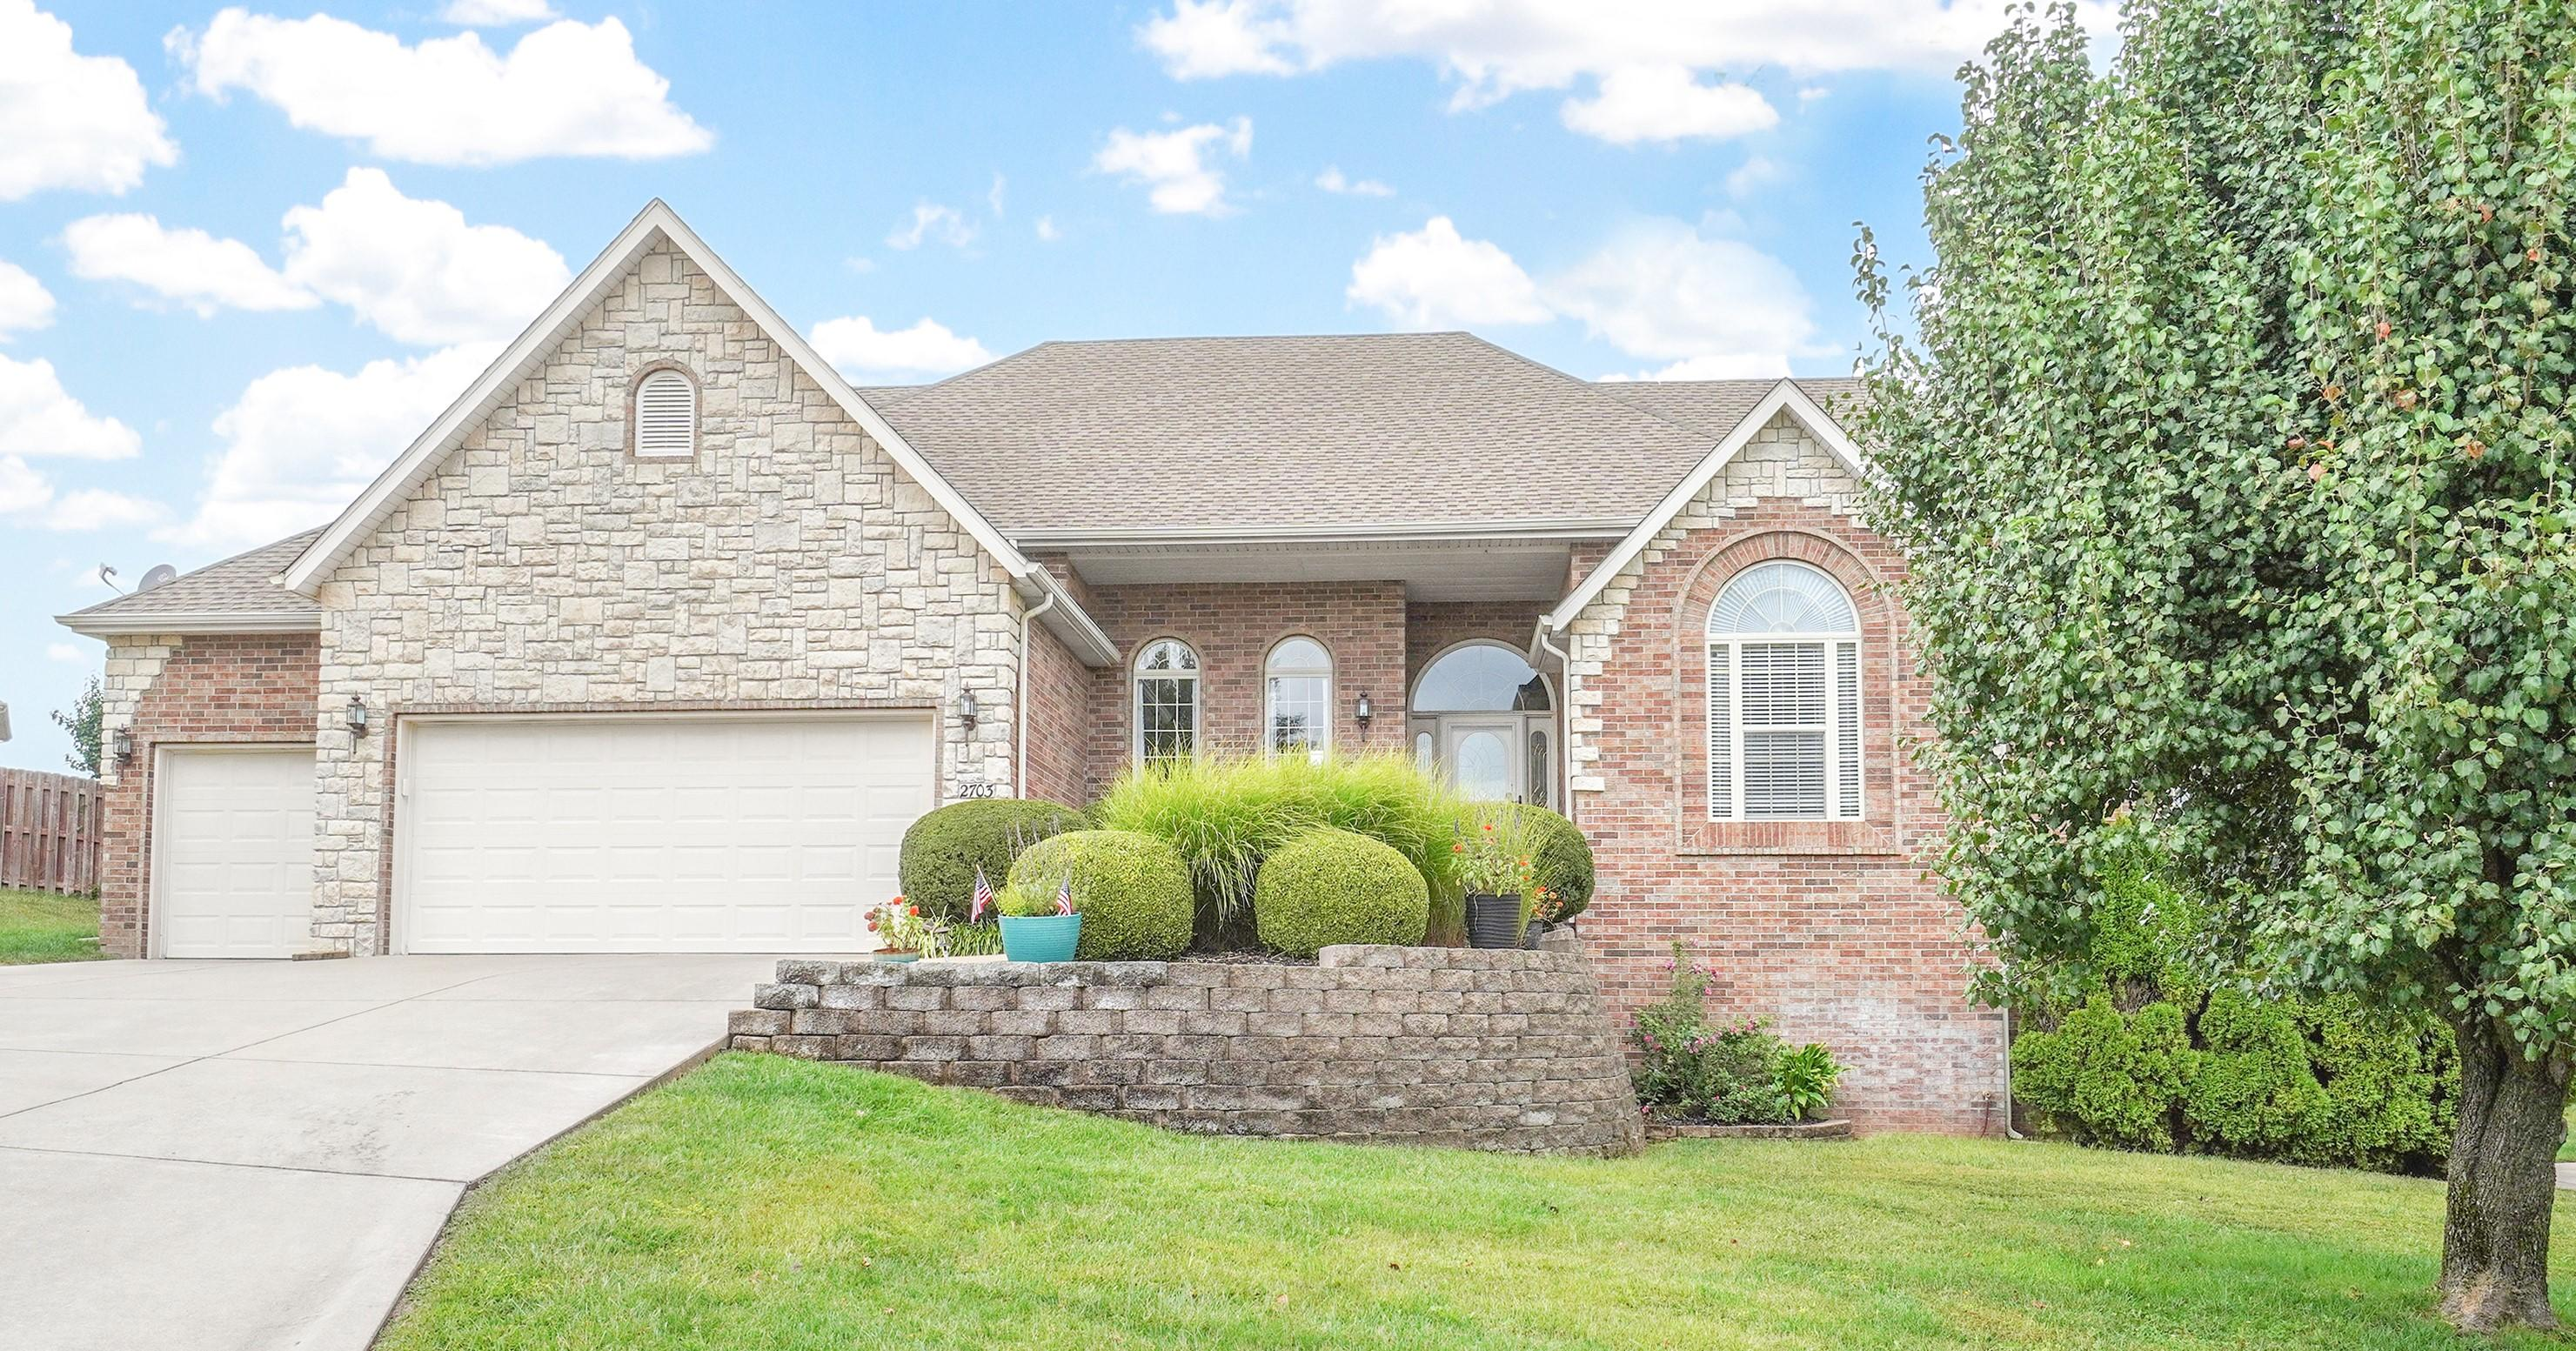 2703 West Trevor Trail Ozark, MO 65721